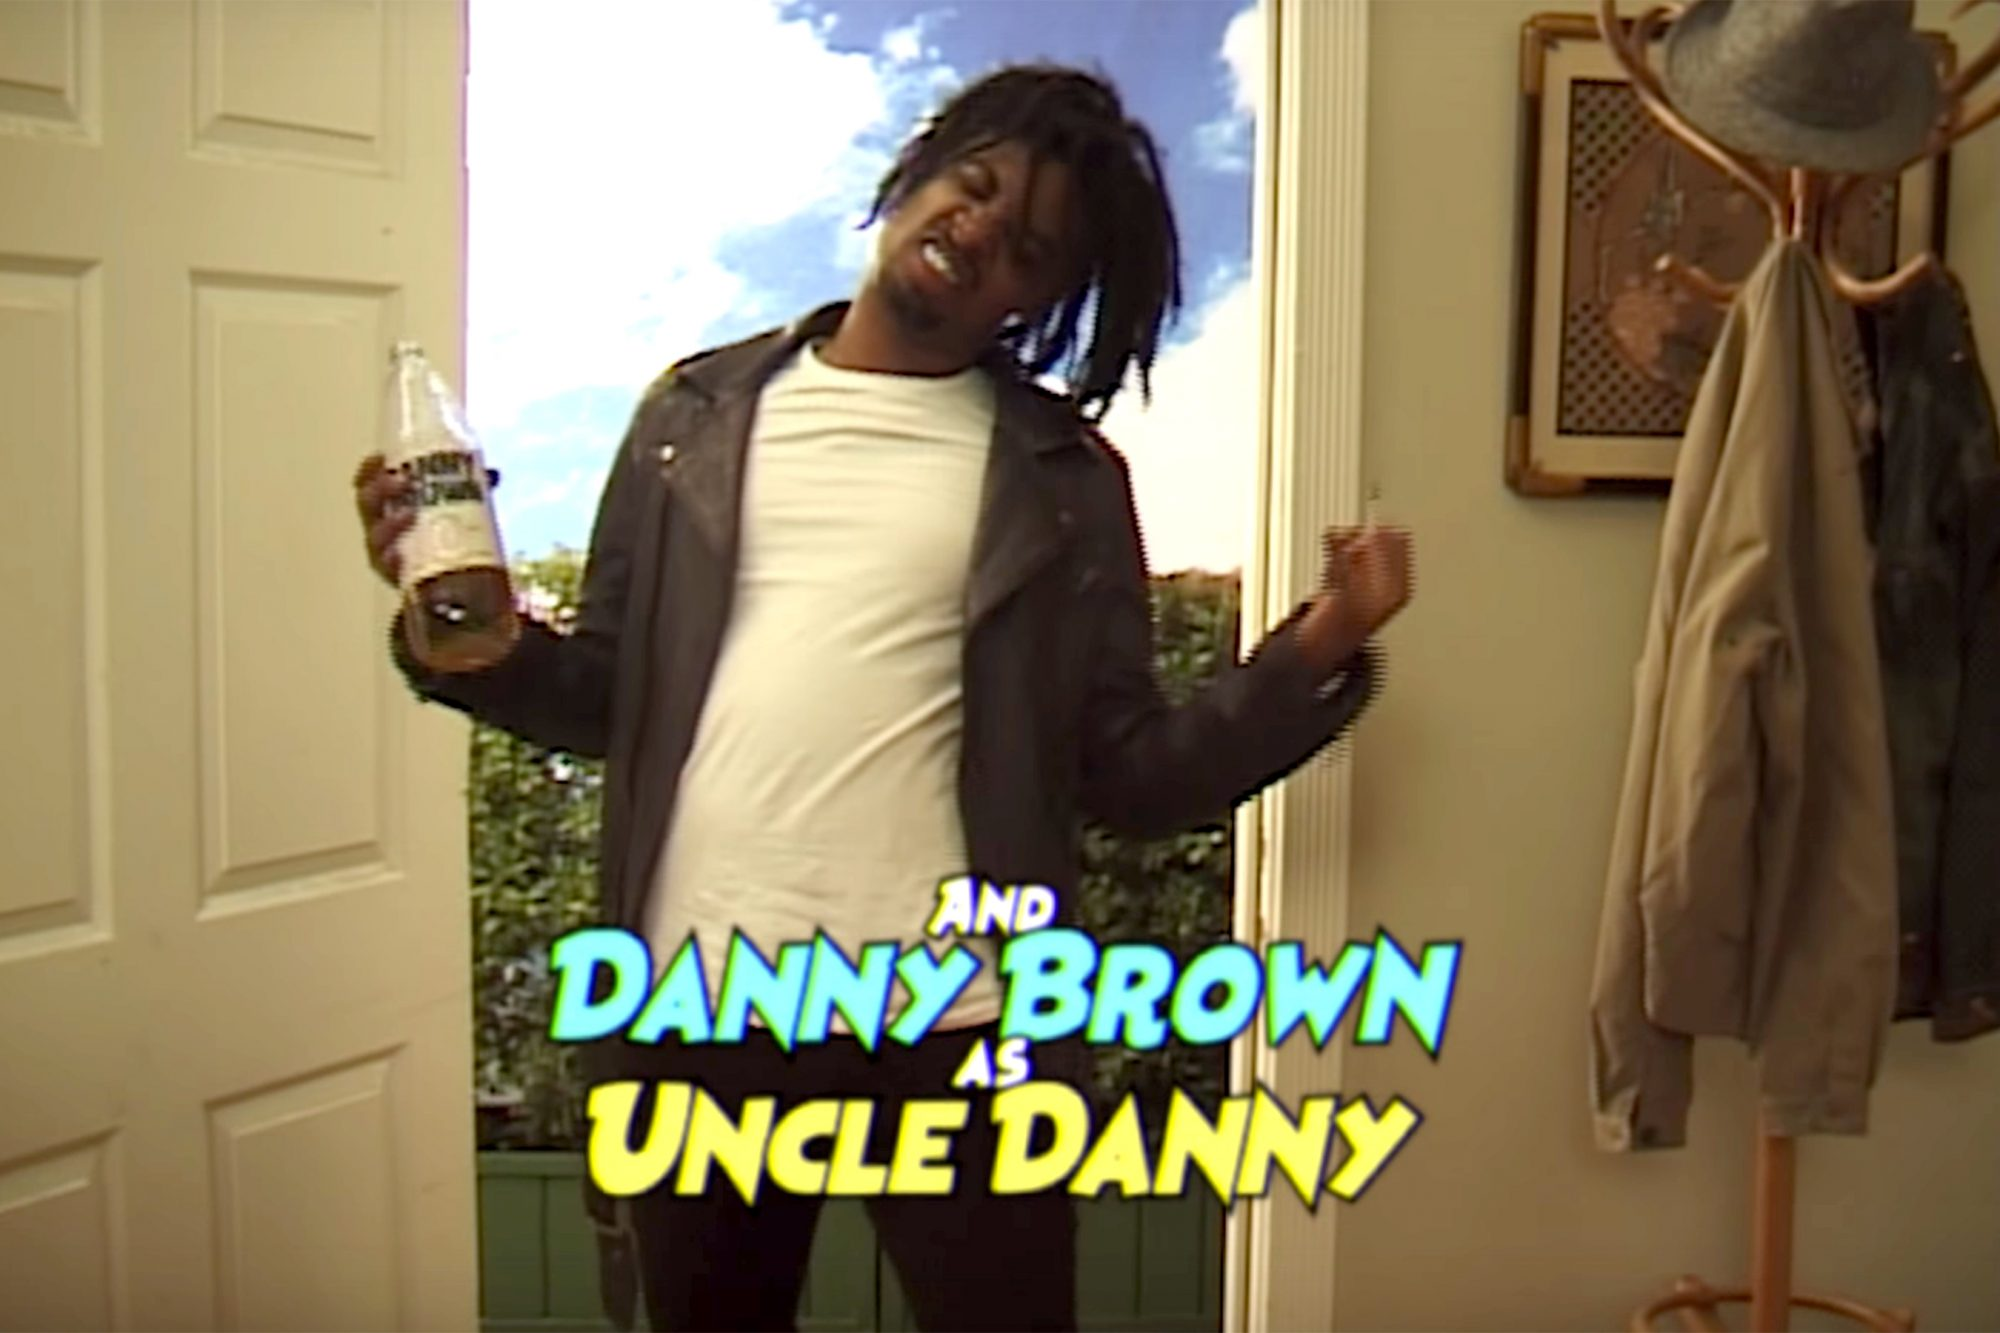 uncledanny